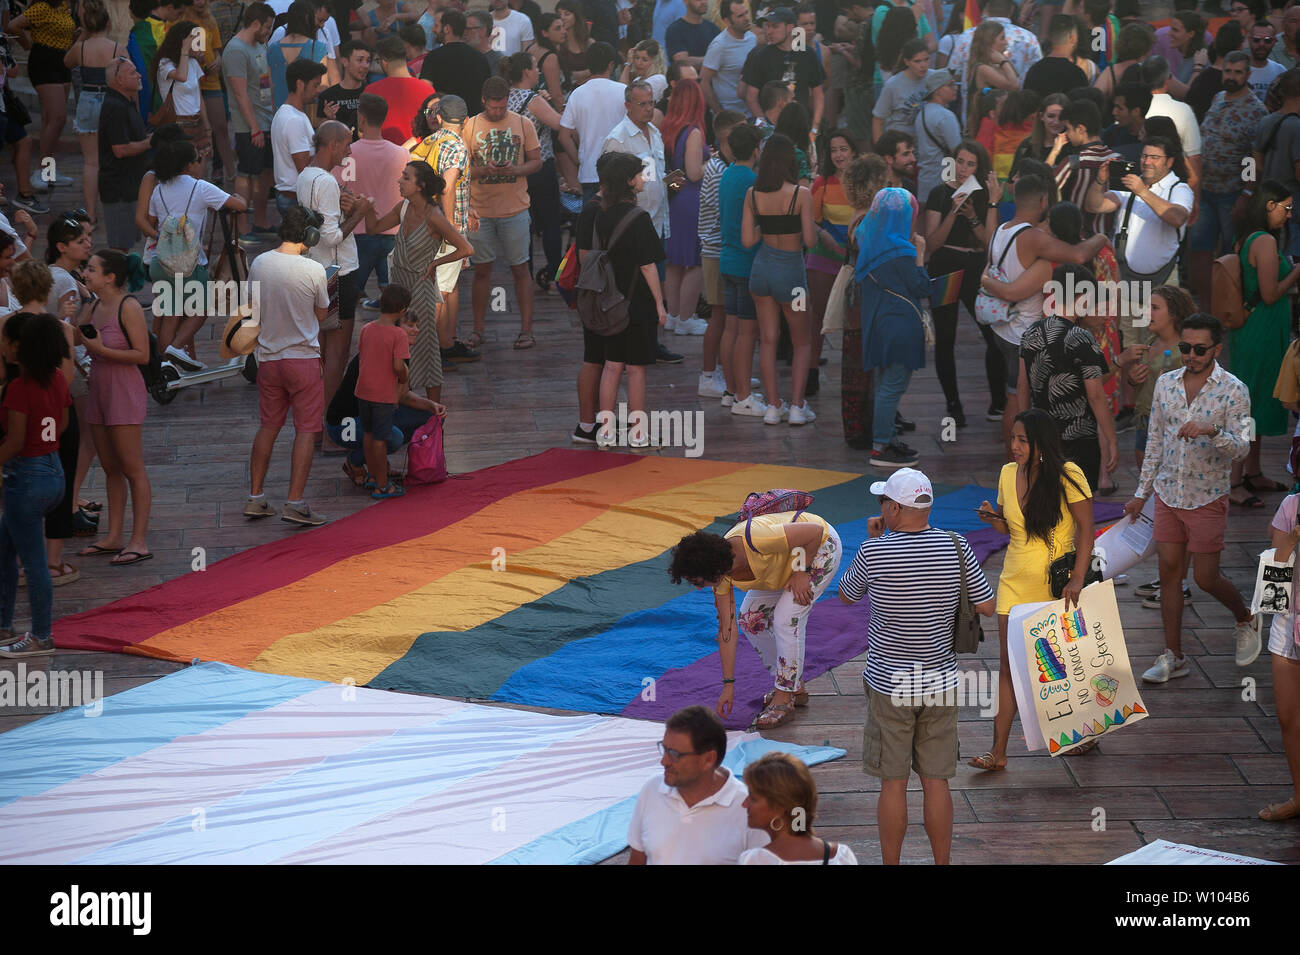 People gather around a large pride flag during a demonstration to celebrate the International Pride LGTBI Day 2019, organized by Andalusia Rainbow Federation.Thousands of people around the world take part on the Pride LGTBI, marked the anniversary of 50 years of Stonewall riot which commemorated the fight of gays, lesbians, transgender, bisexuals and intersexual during the first demonstrations in US in favour of their rights. Stock Photo